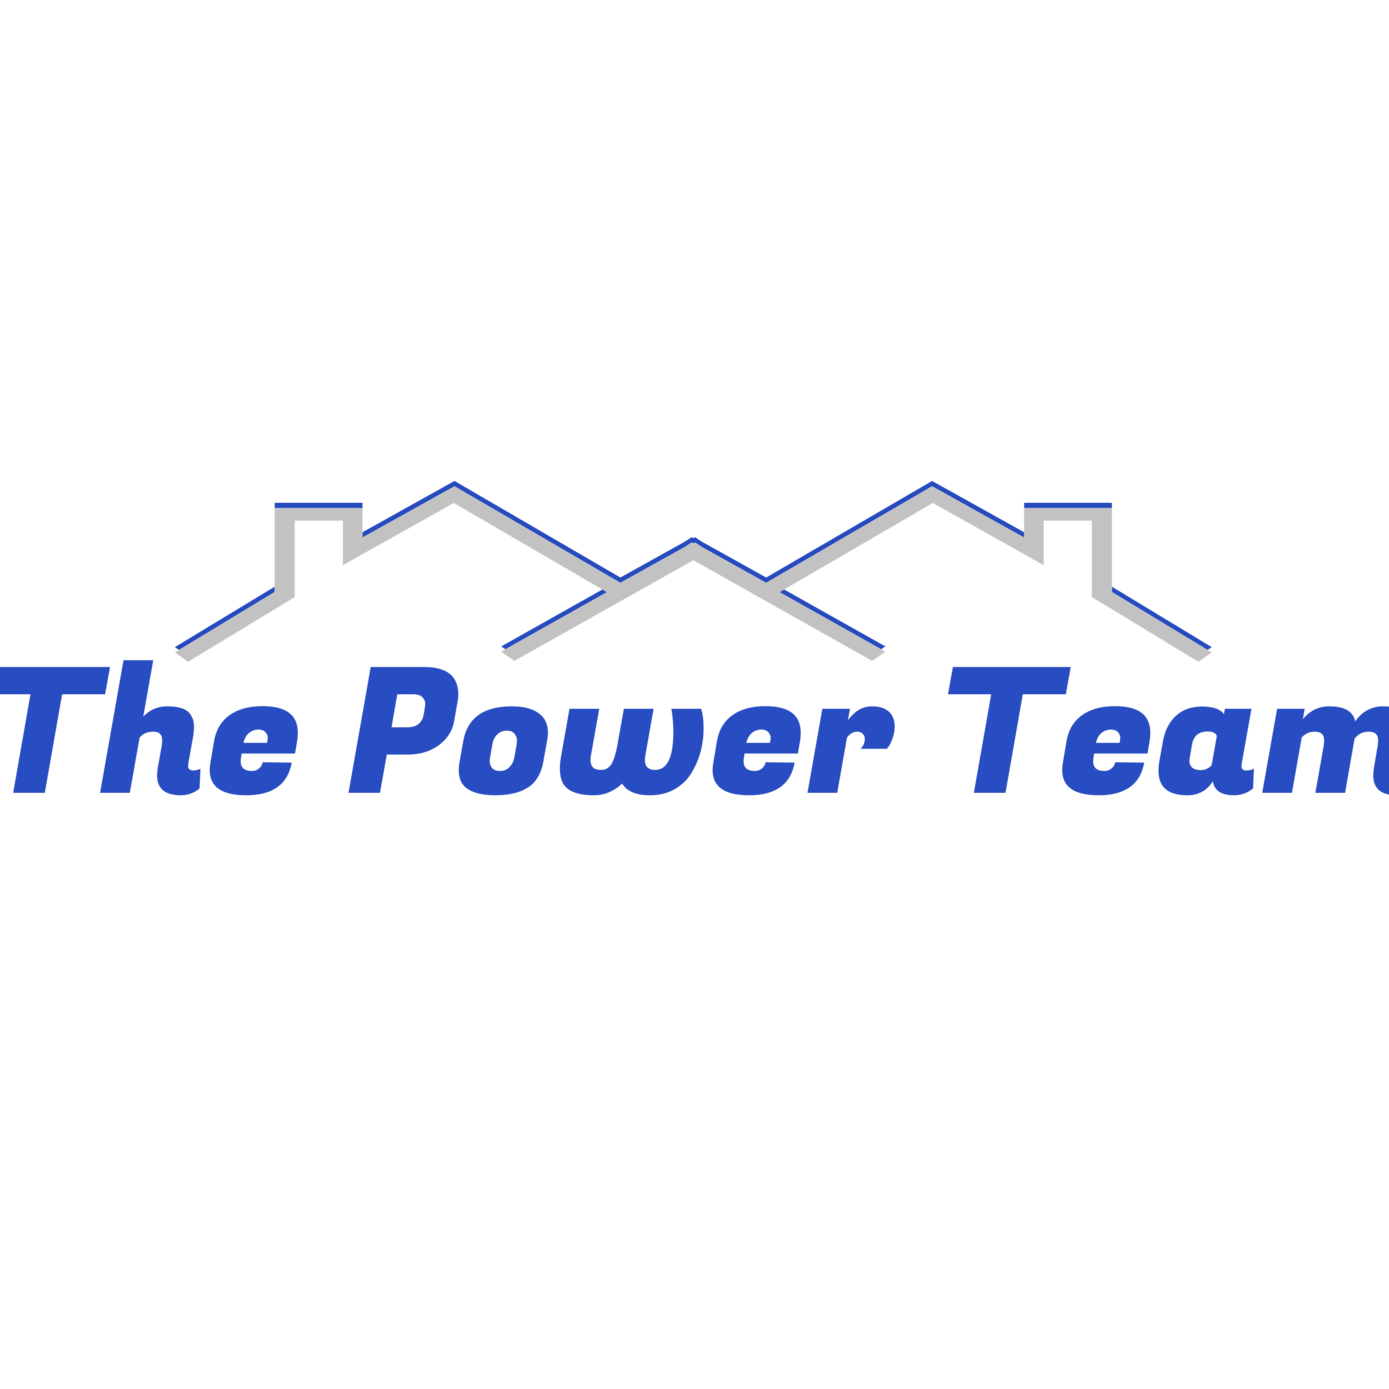 The Power Team - Sellstate Performance Realty